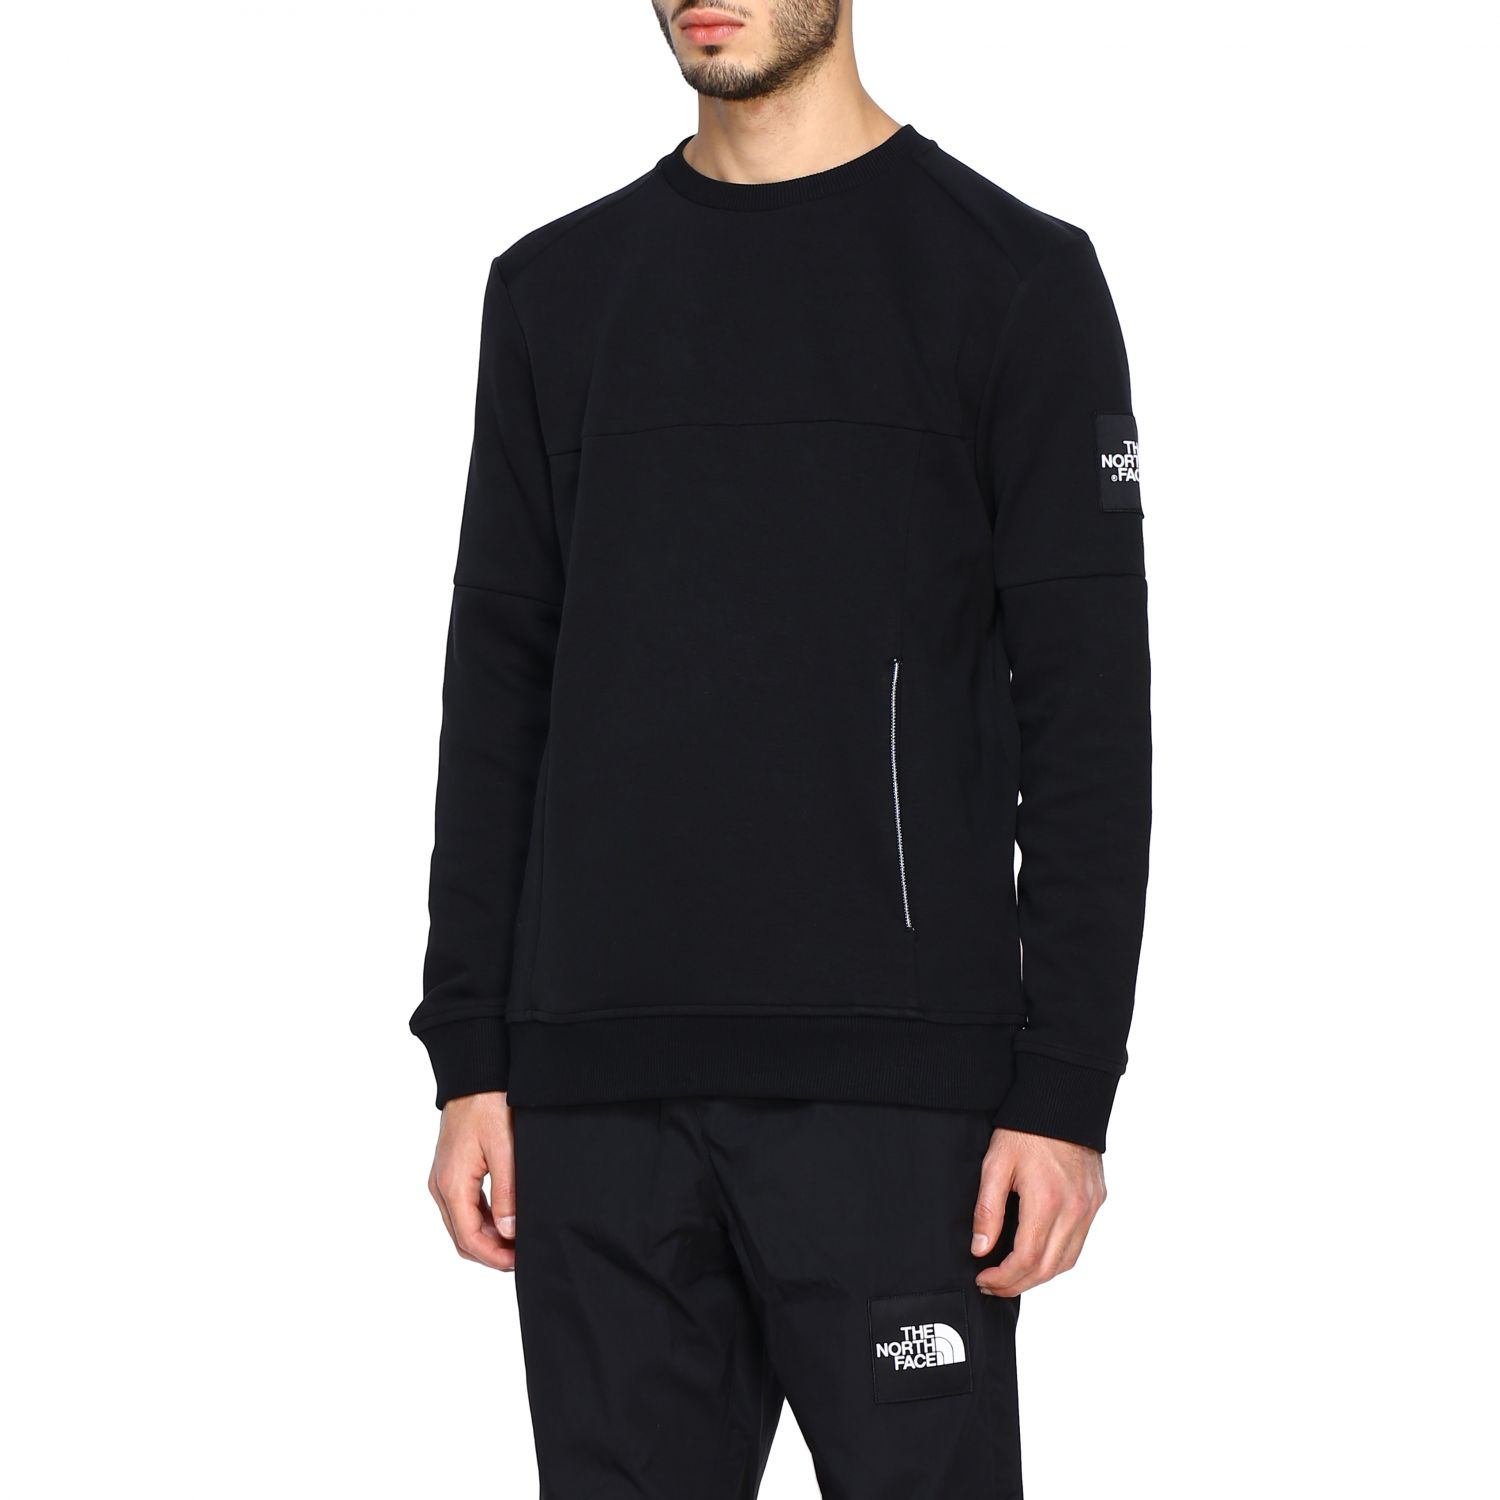 Sweatshirt herren The North Face schwarz 4